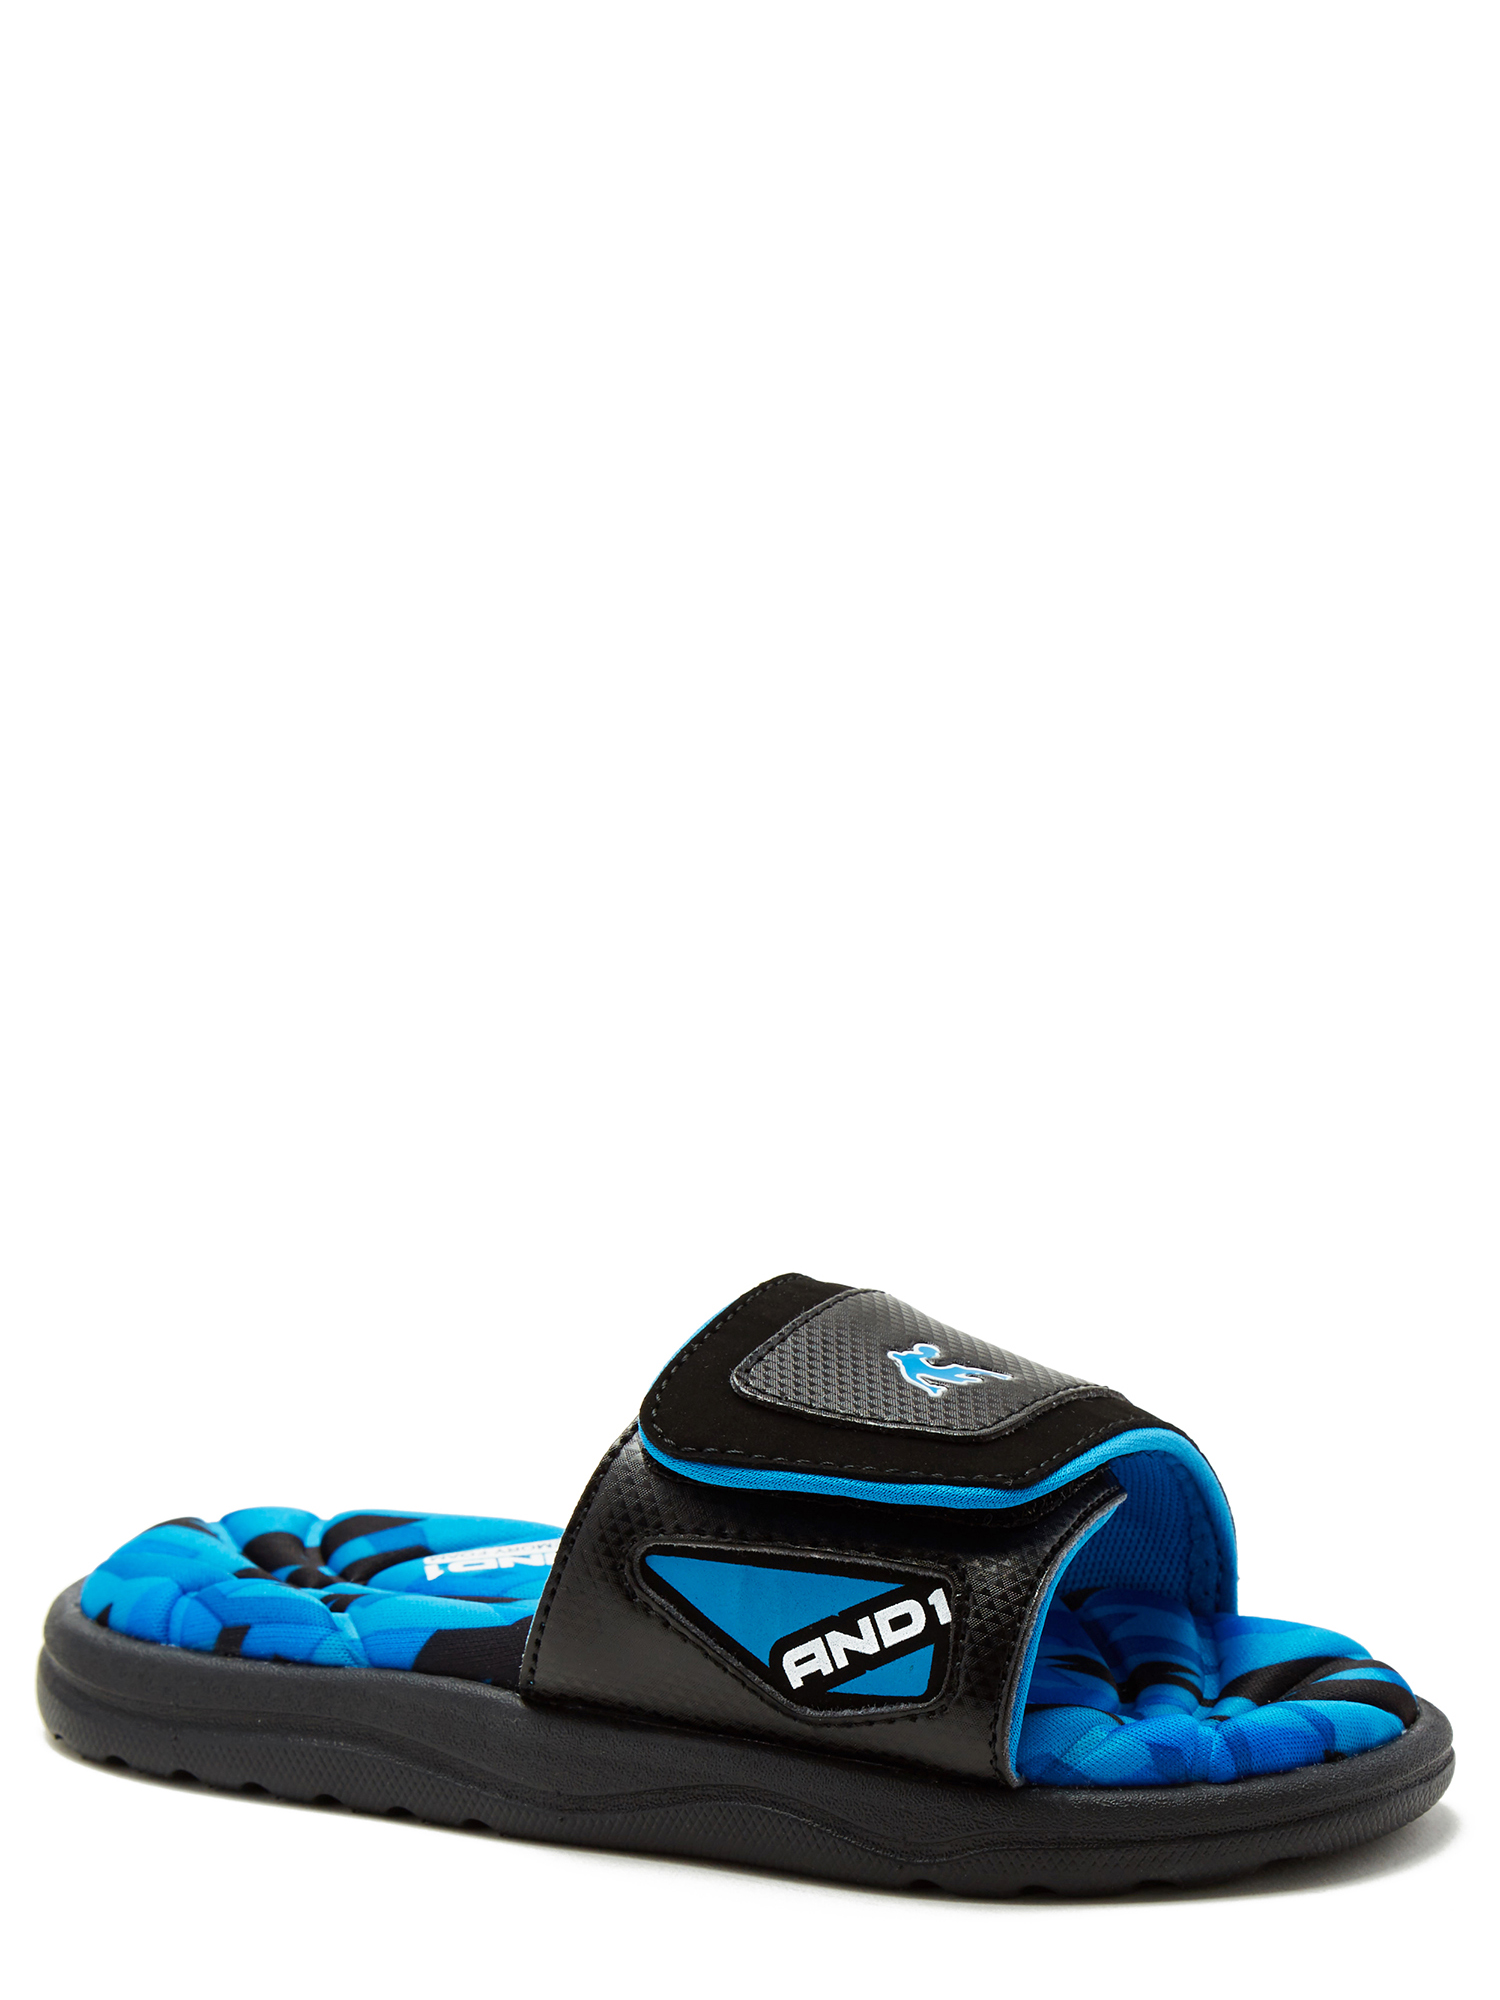 Boys' Canter Slide Sandal